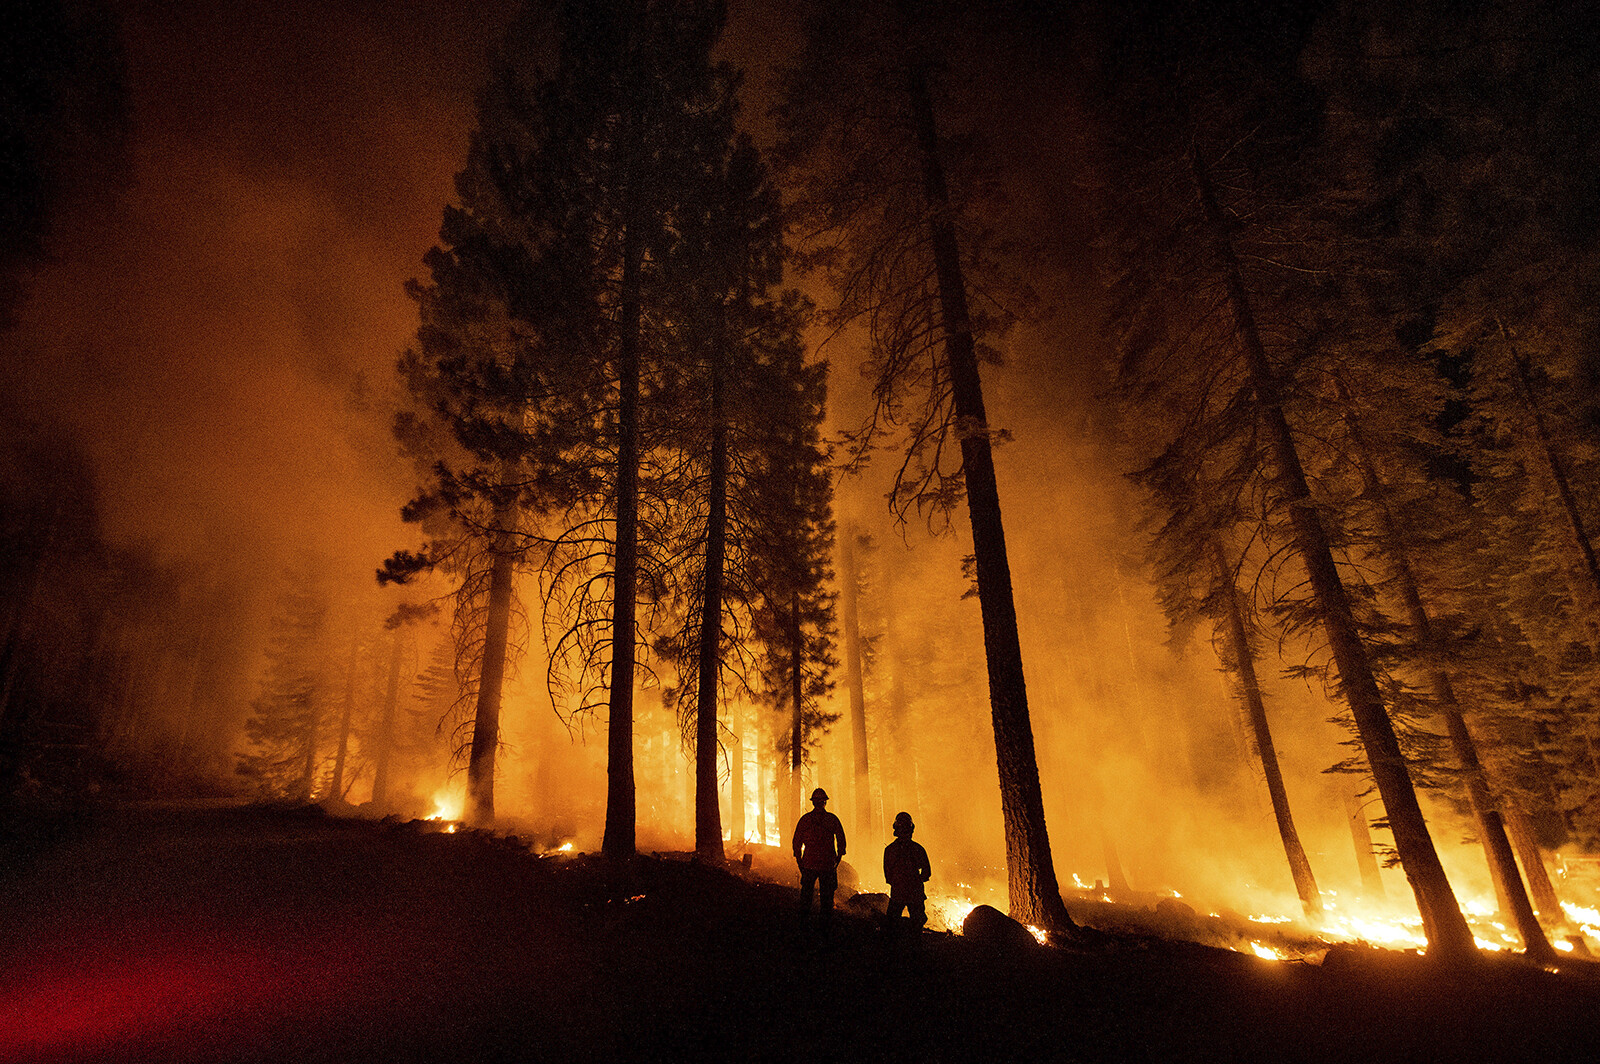 <i>Noah Berger/AP</i><br/>President Joe Biden and Vice President Kamala Harris will meet with seven governors on July 30 to talk about how states are responding to a devastating Western wildfire season -- and how the federal government can assist.